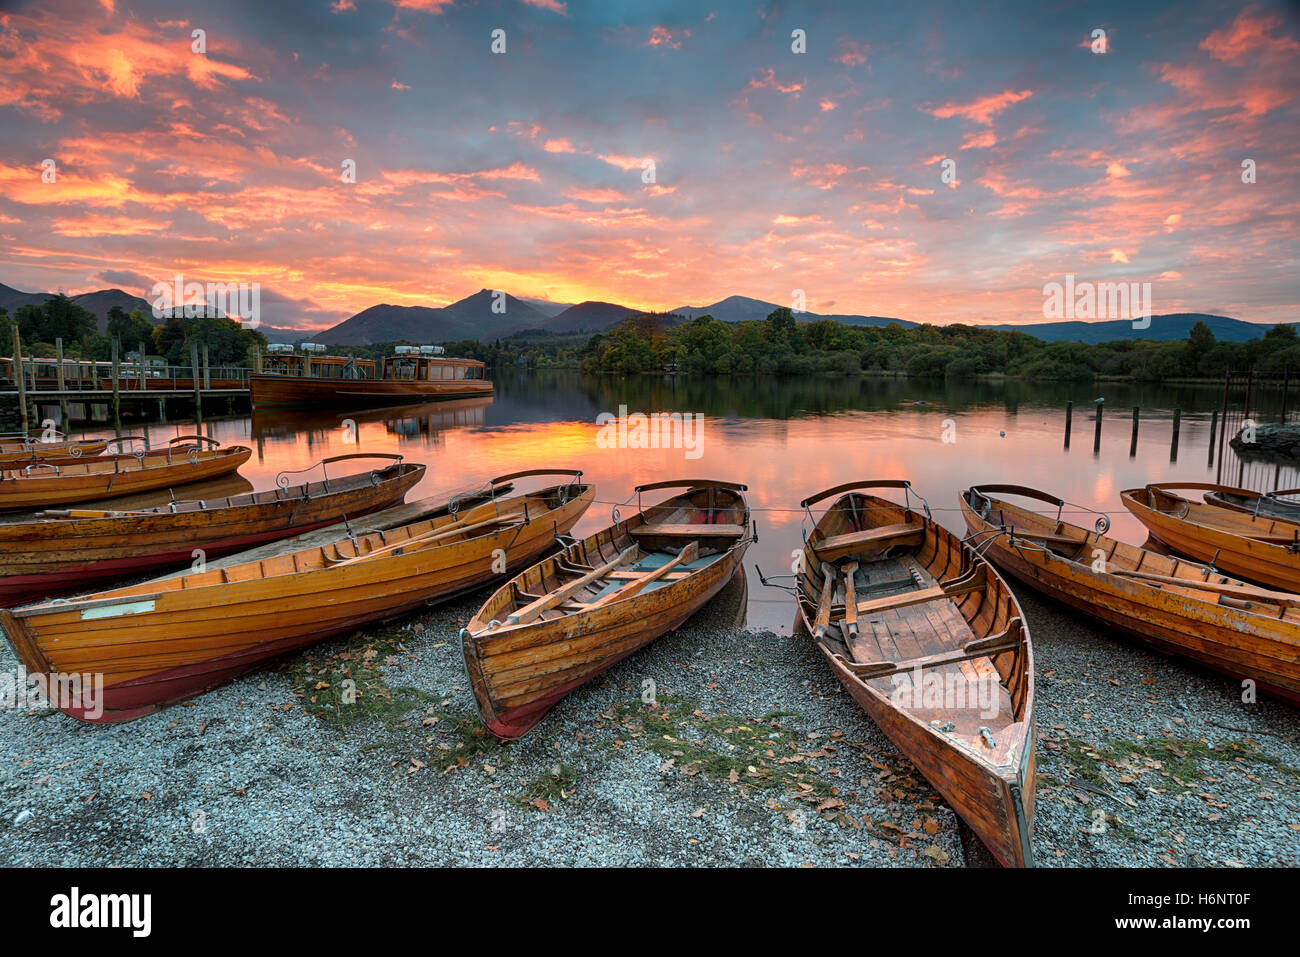 Stunning sunset over wooden rowing boats on Derwentwater at Keswick in the Lake District Nationla Park in Cumbria - Stock Image